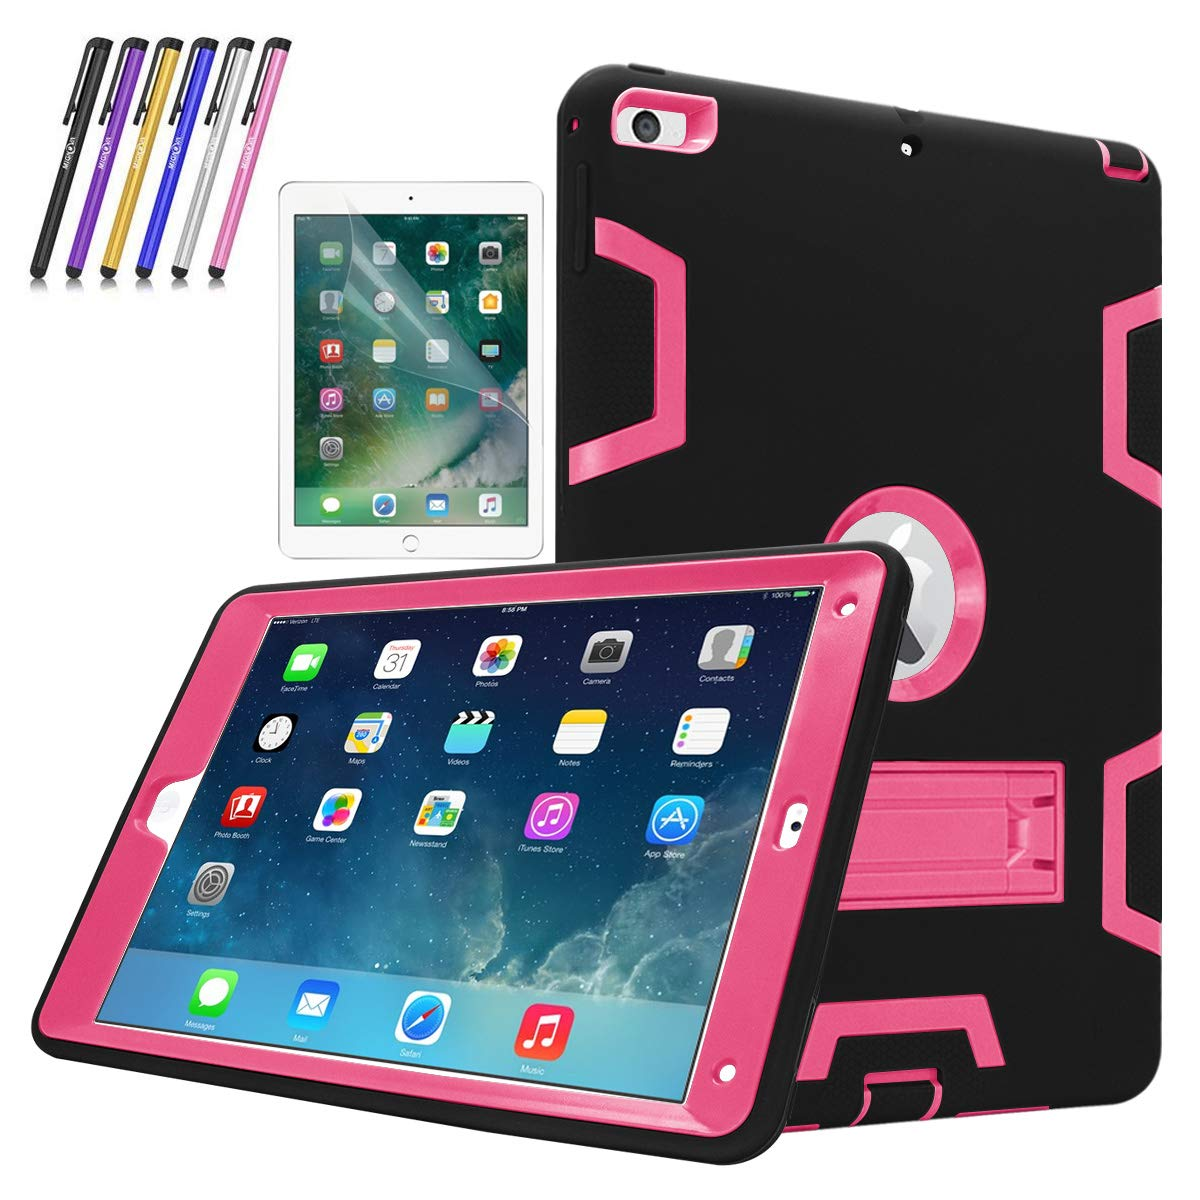 New iPad 9.7' 2018/2017 Case, Mignova Heavy Duty rugged Hybrid Protective Case with Build In Kickstand For Apple iPad 9.7 2018/2017 A1822/A1823 + Screen Protector Film and Stylus Pen (Gray / Purple) TWNIP9707